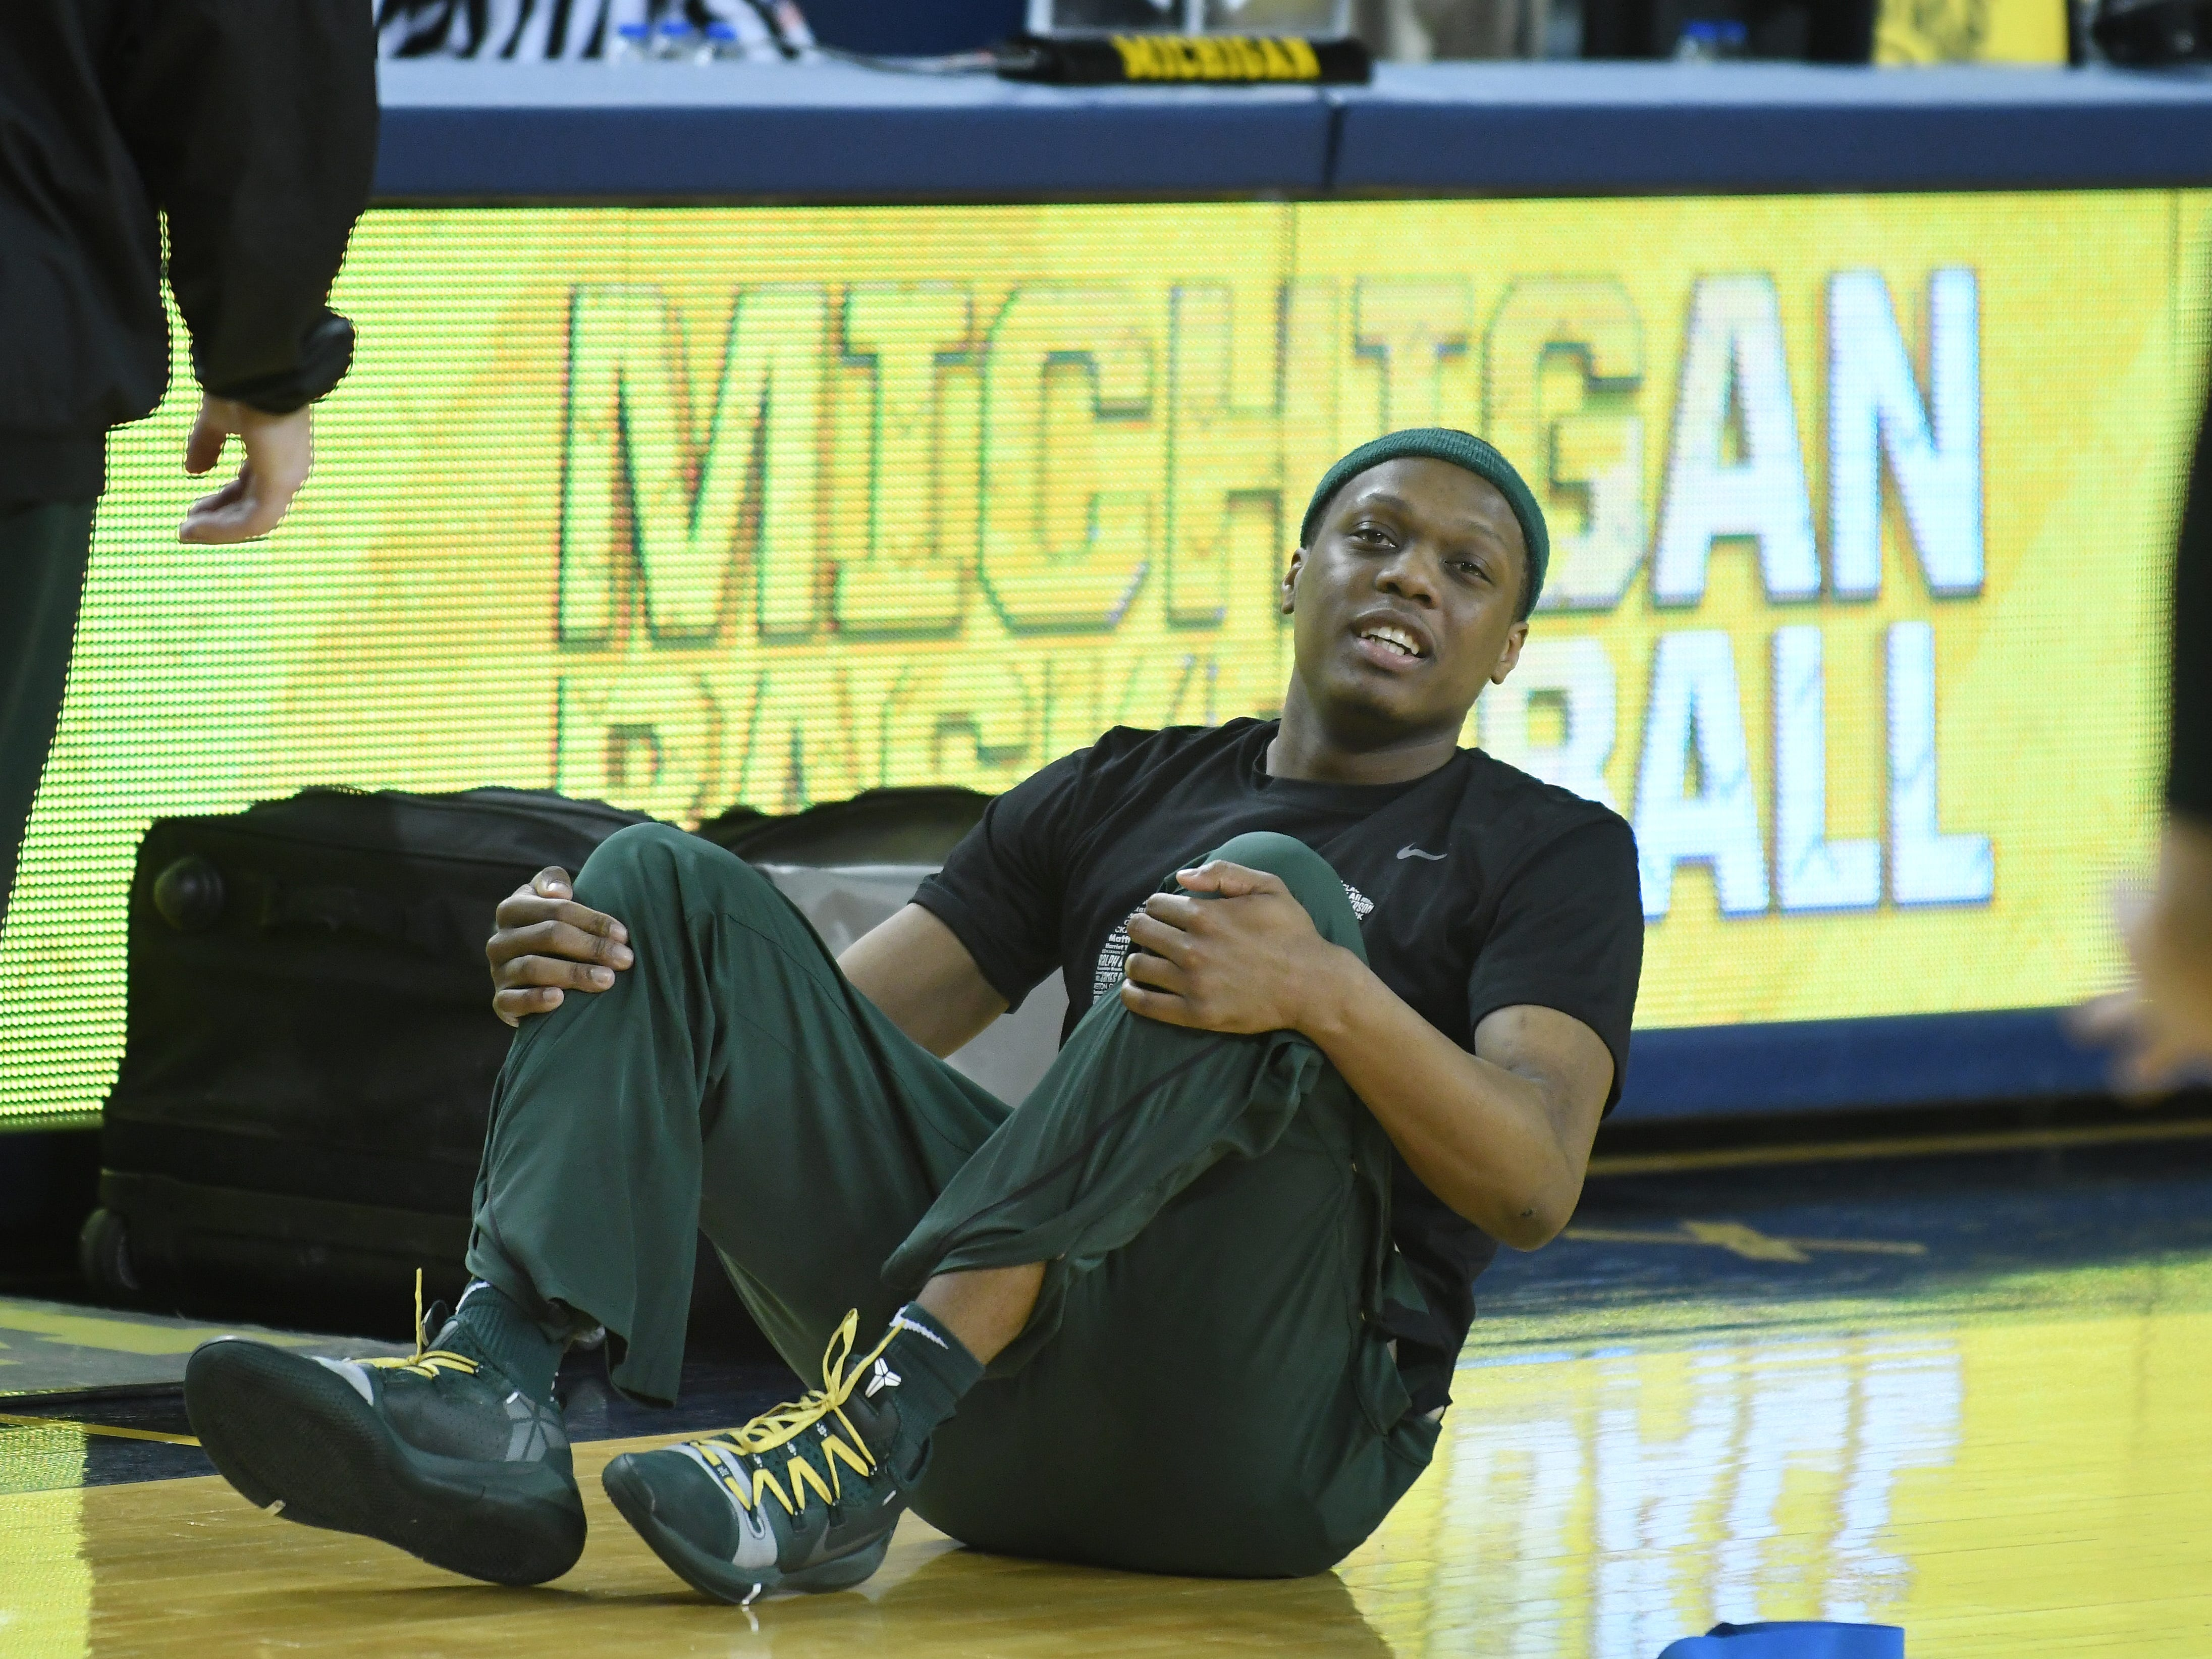 Michigan State's Cassius Winston stretches before taking on Michigan at Crisler Center in Ann Arbor, Michigan on February 24, 2019.